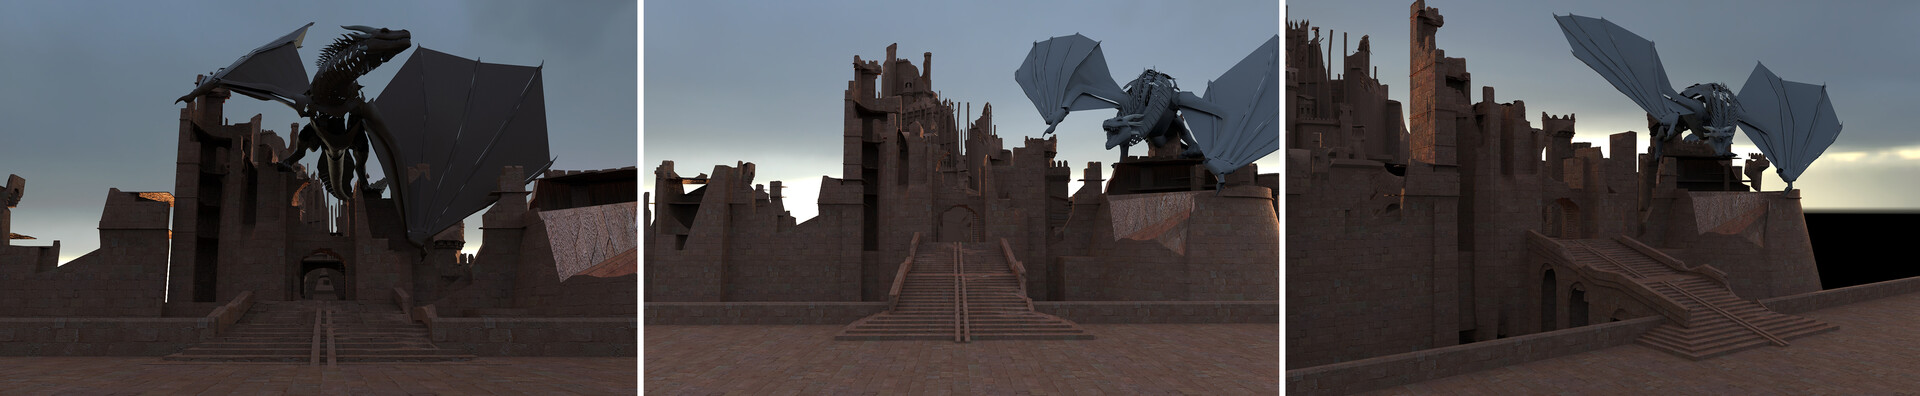 Early renders of the Red Keep gate model